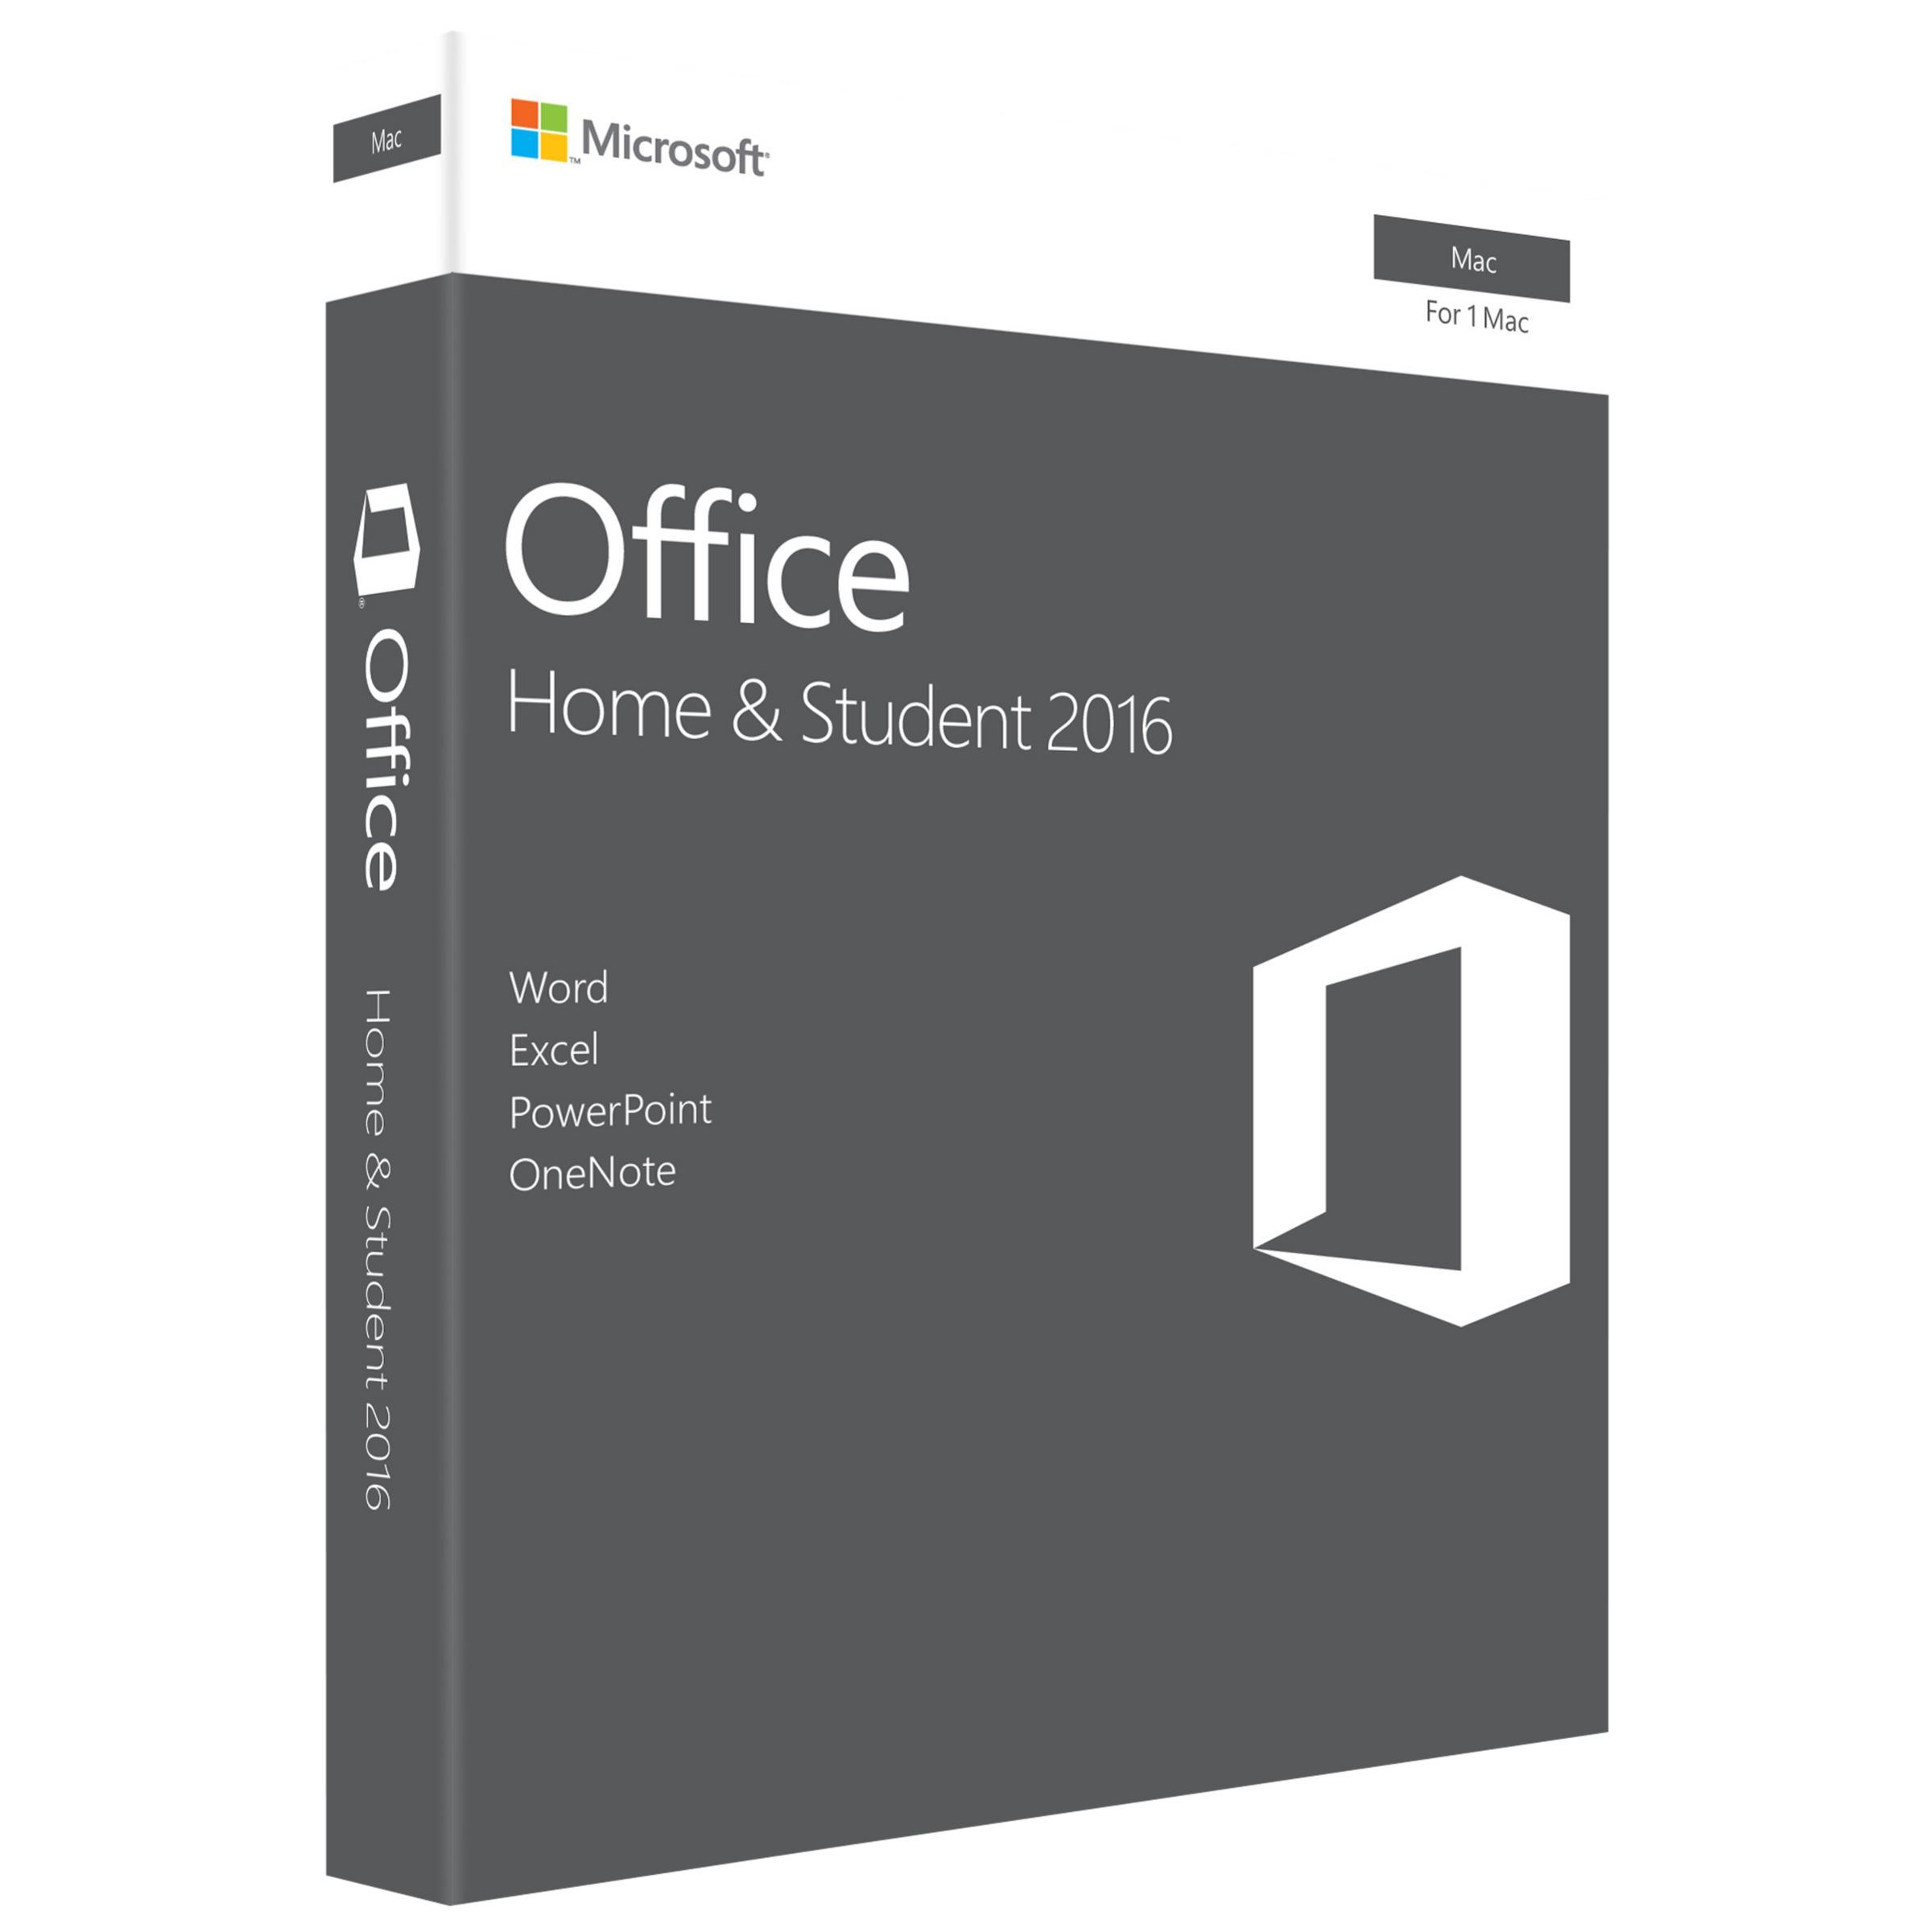 Microsoft Microsoft Office Home and Student 2016, 1 Mac, One-Off Payment